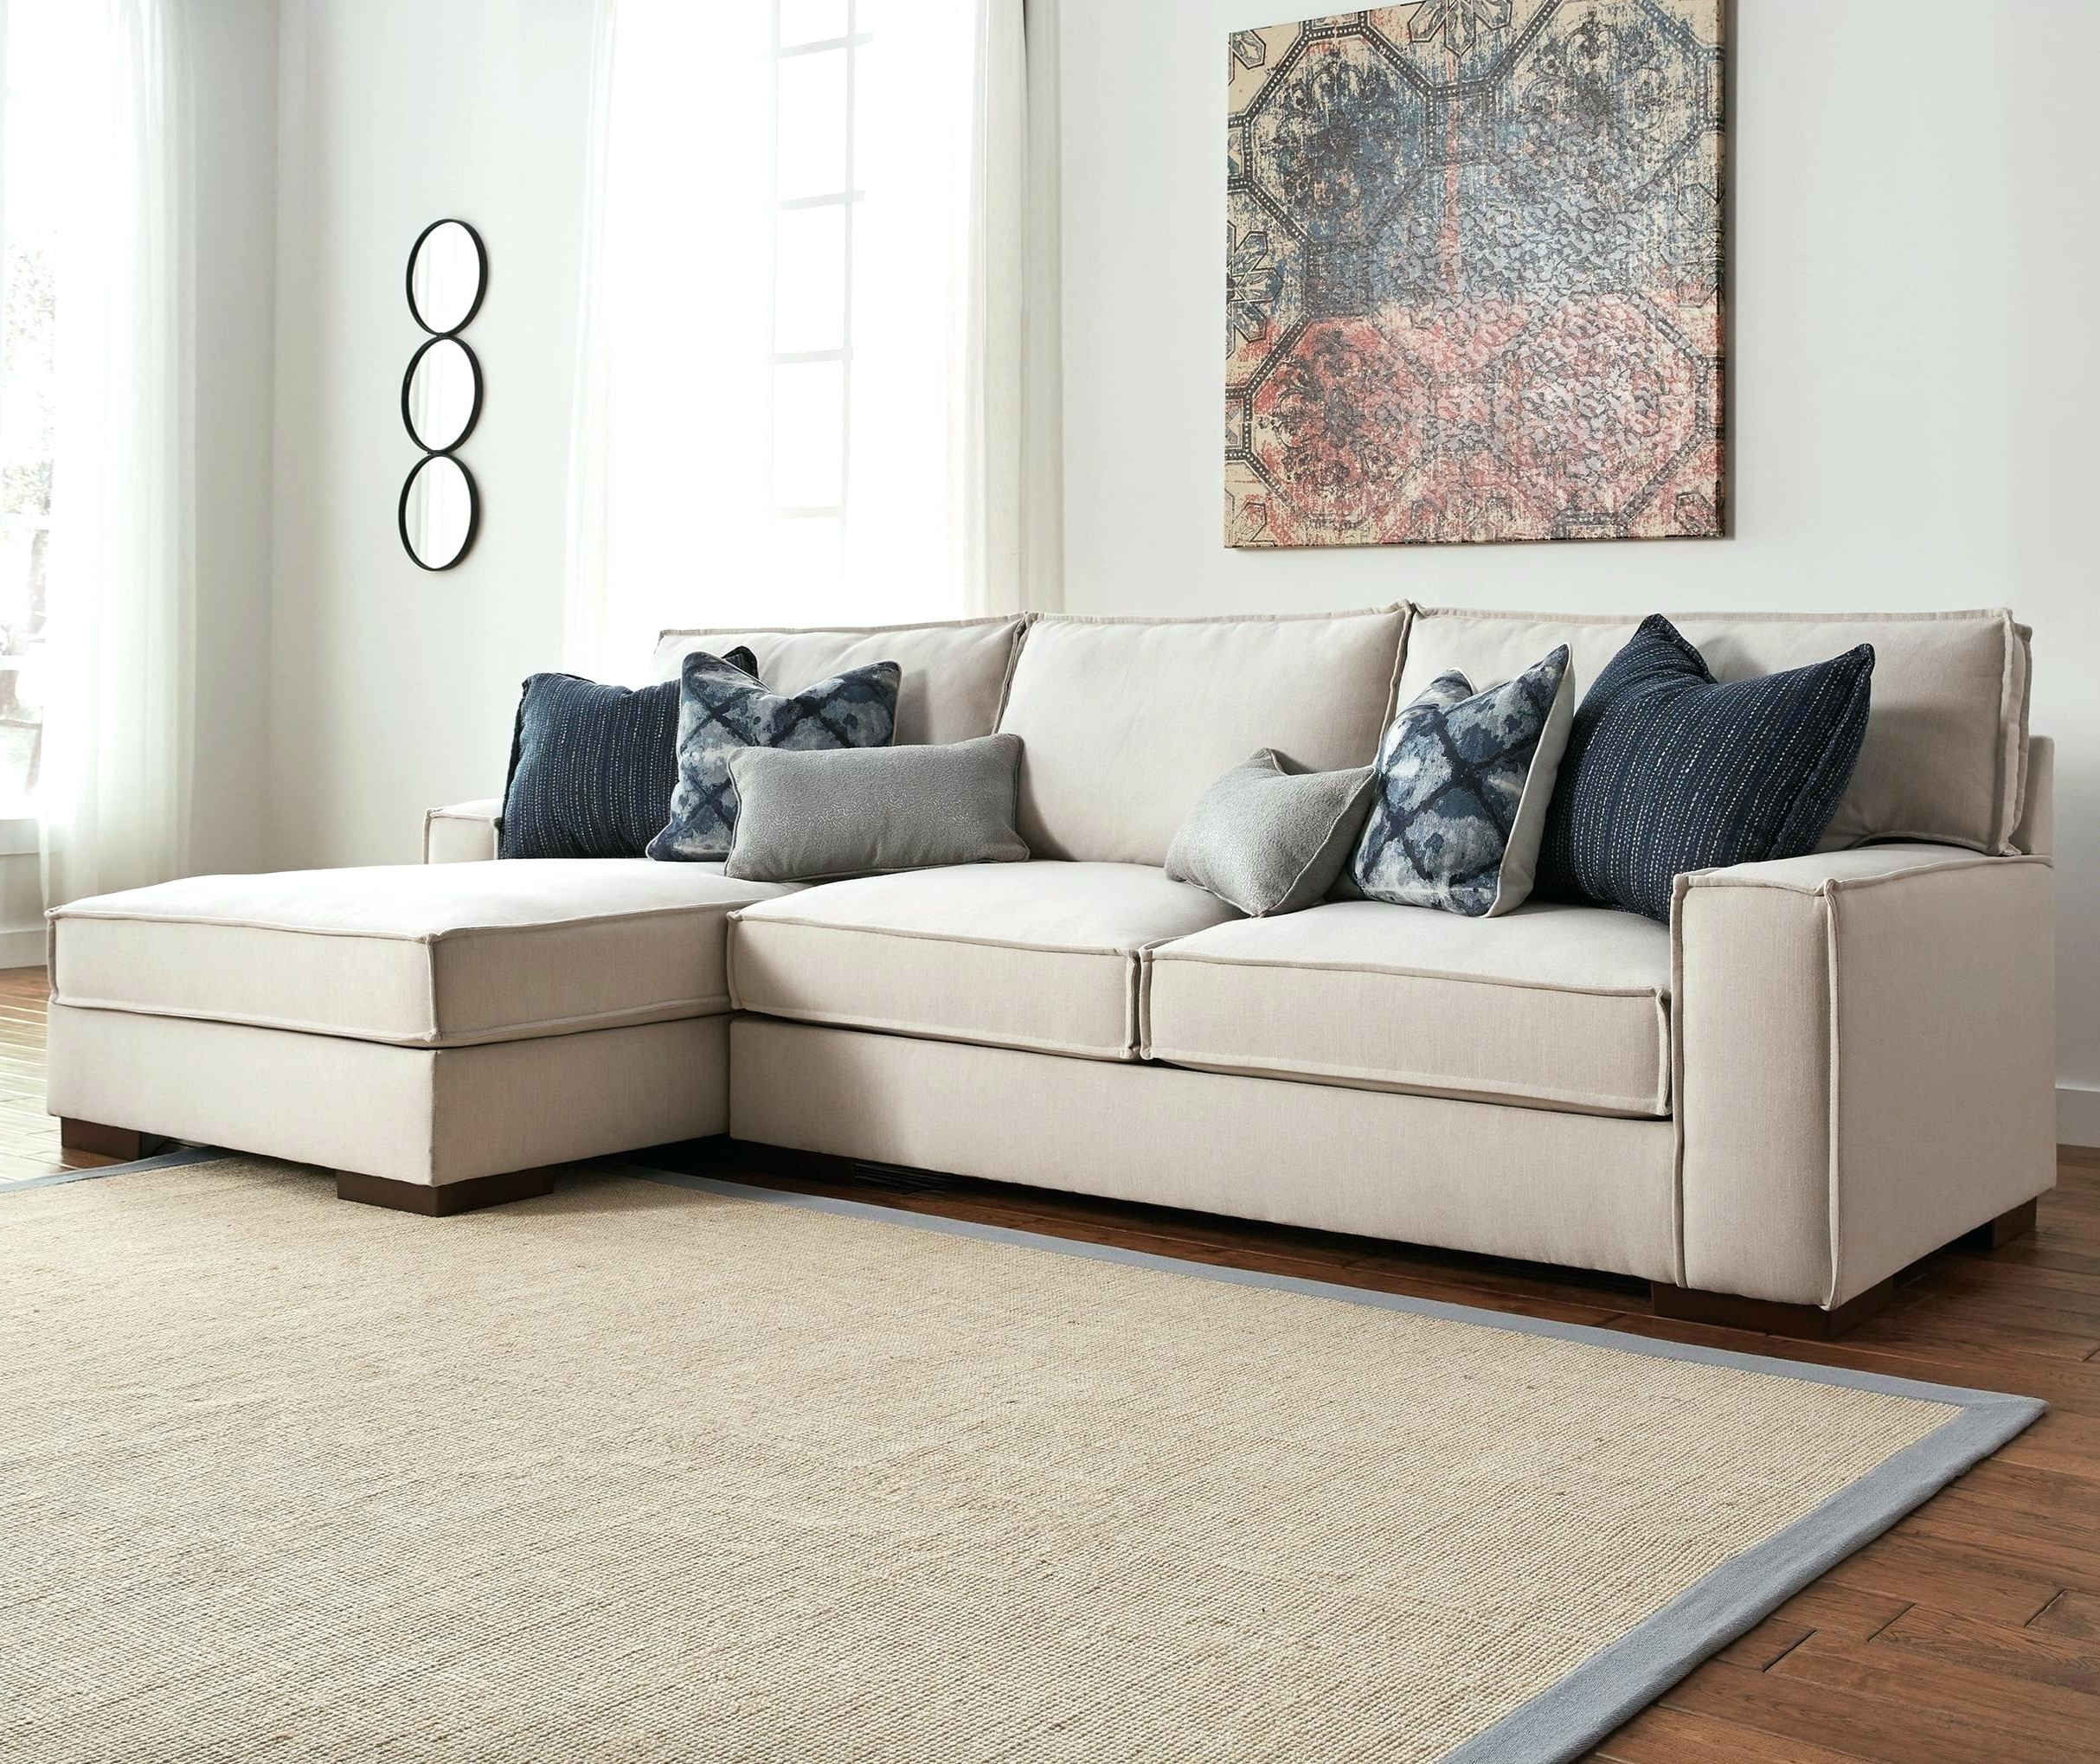 2019 2 Piece Sectional Sofa With Chaise 2 Piece Sectional With Chaise With Jobs Oat 2 Piece Sectionals With Left Facing Chaise (Gallery 4 of 20)